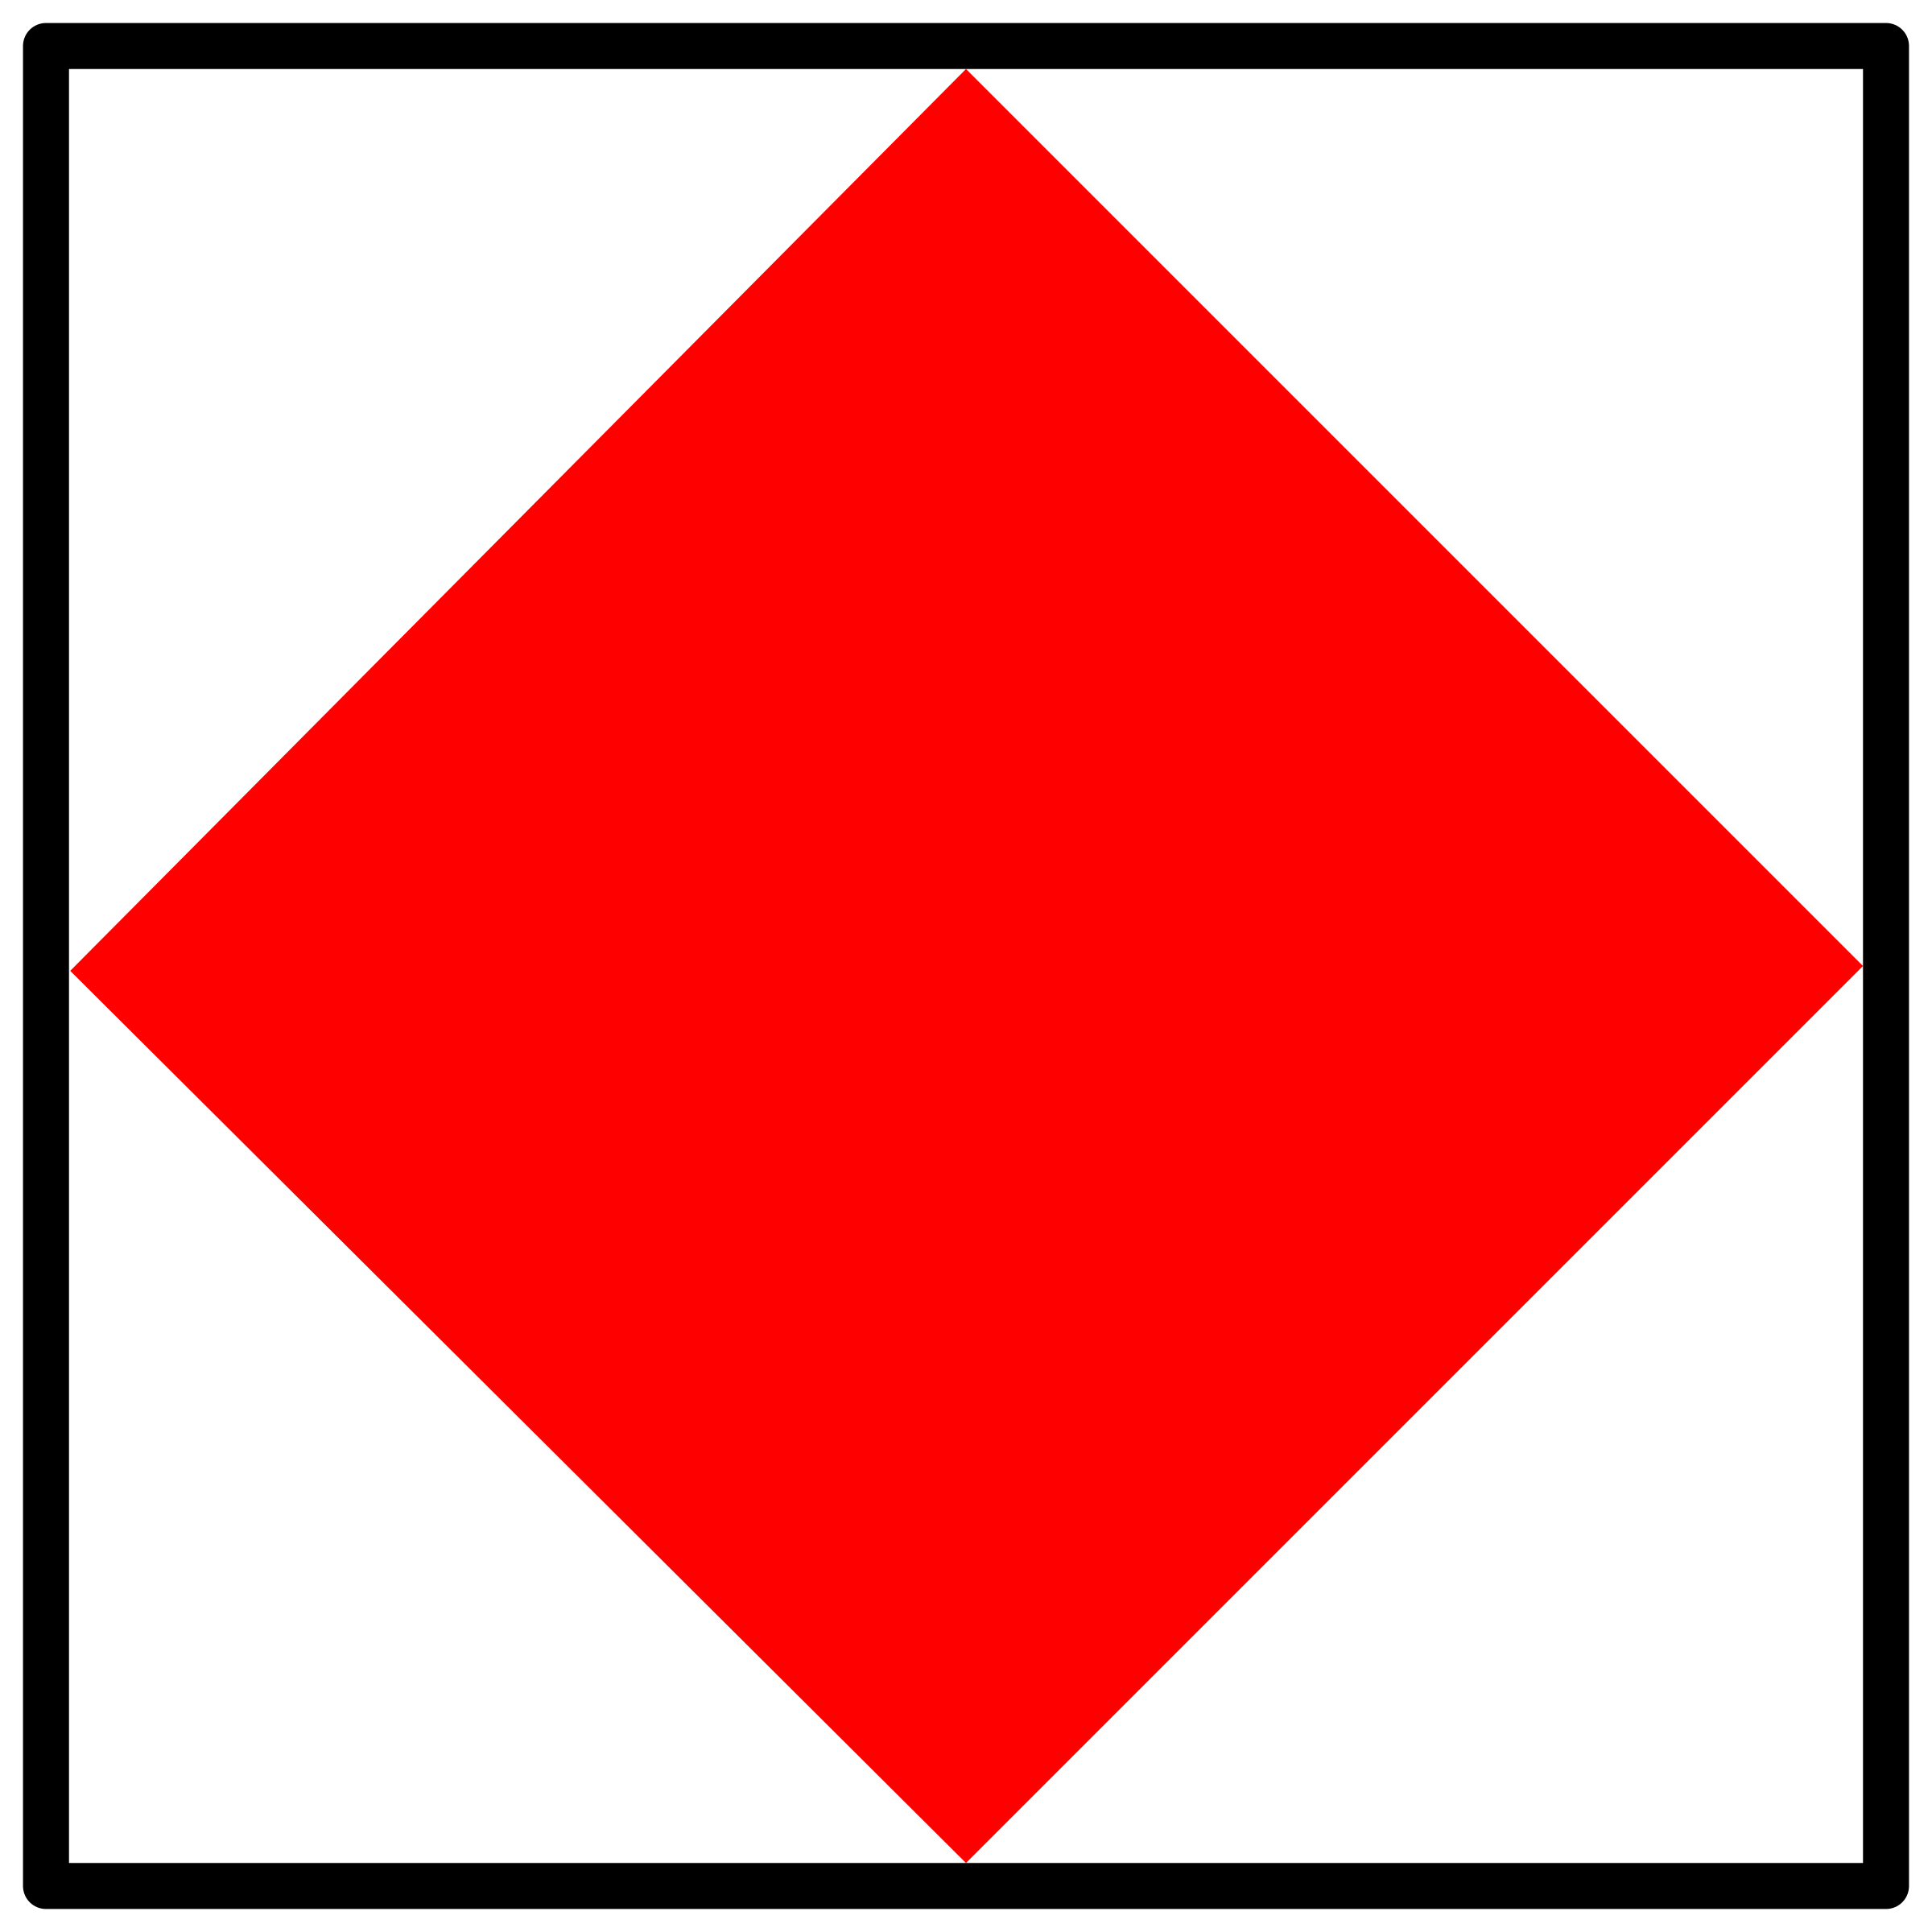 signal flag foxtrot by Anonymous